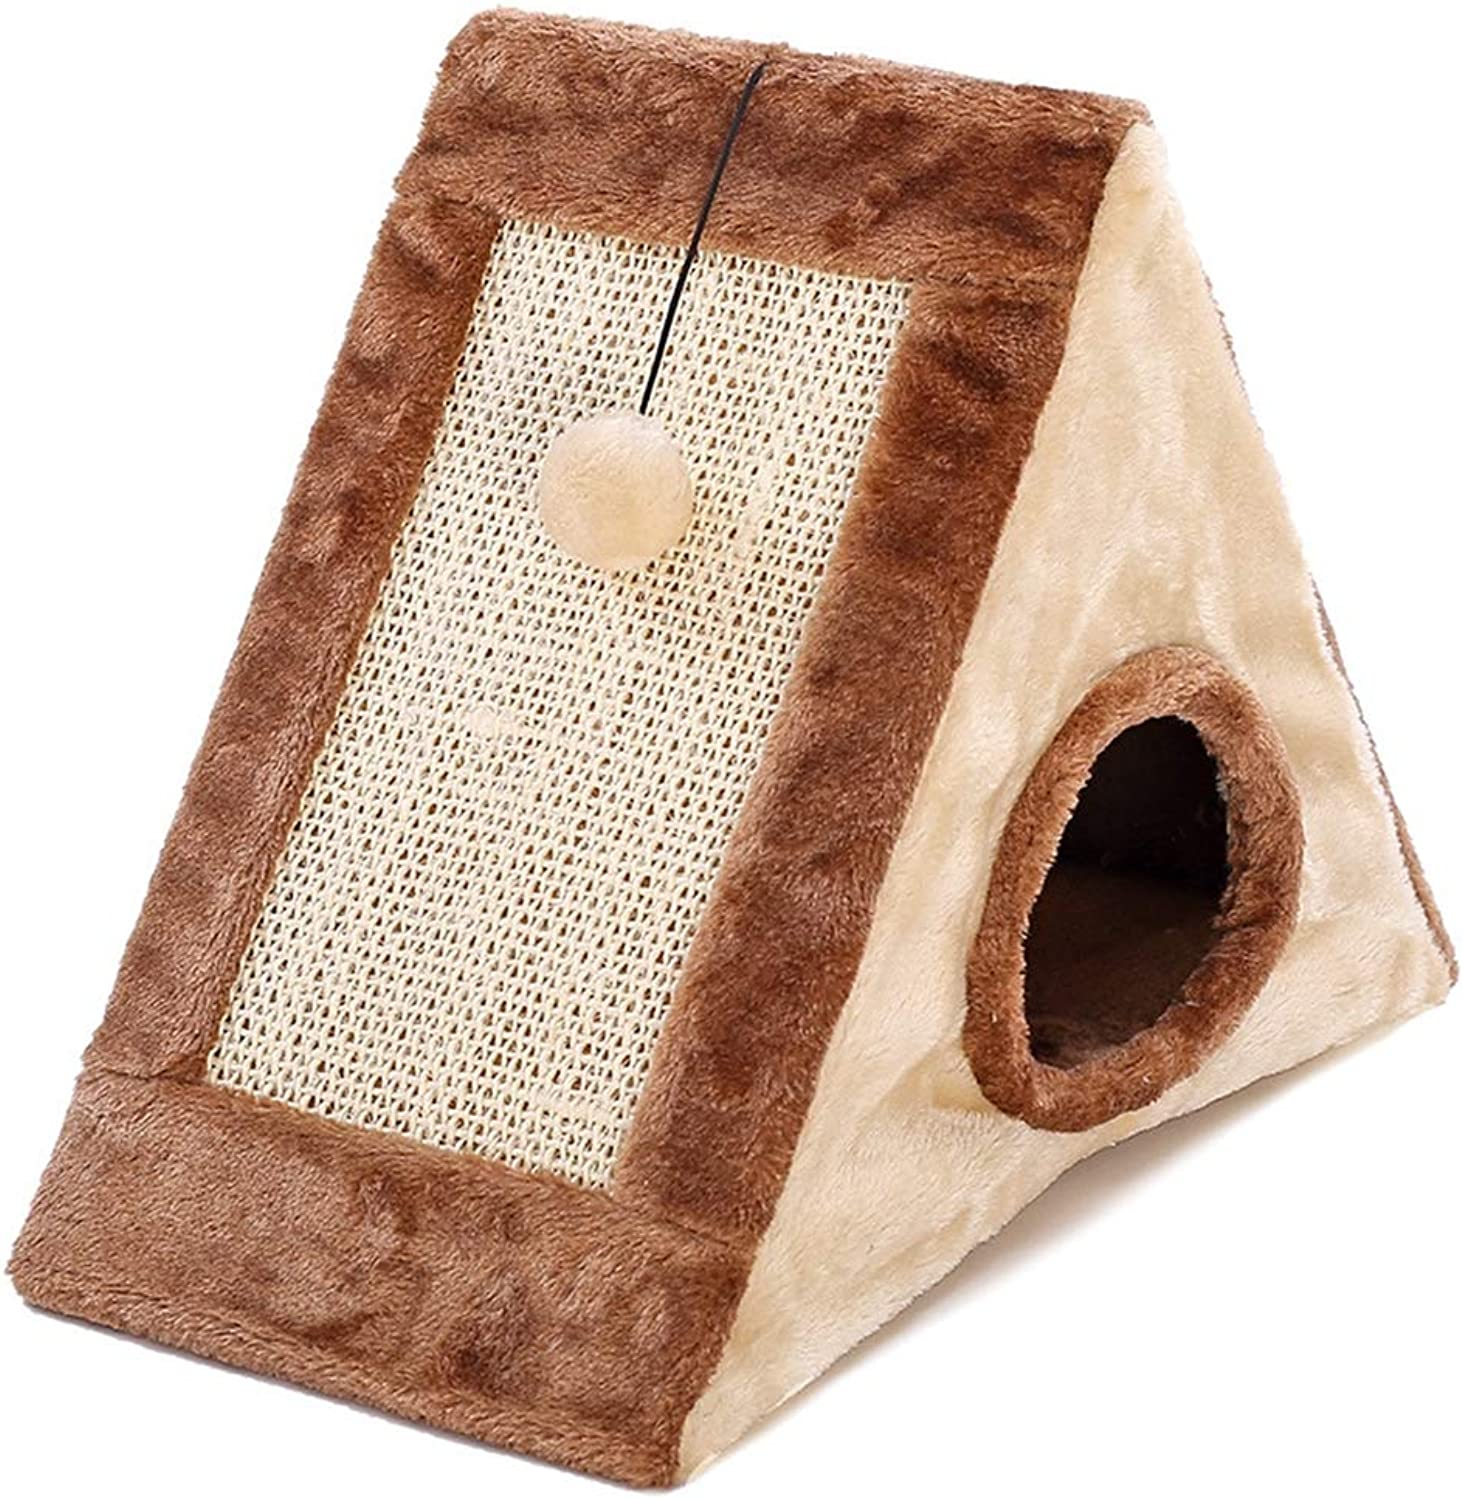 Cat Scratch Board Cat Nest Bed Hole Kitten Climbing Frame Triangle Grinding Claw Toys Training Pet Supplies Cat Toy,Brown,S